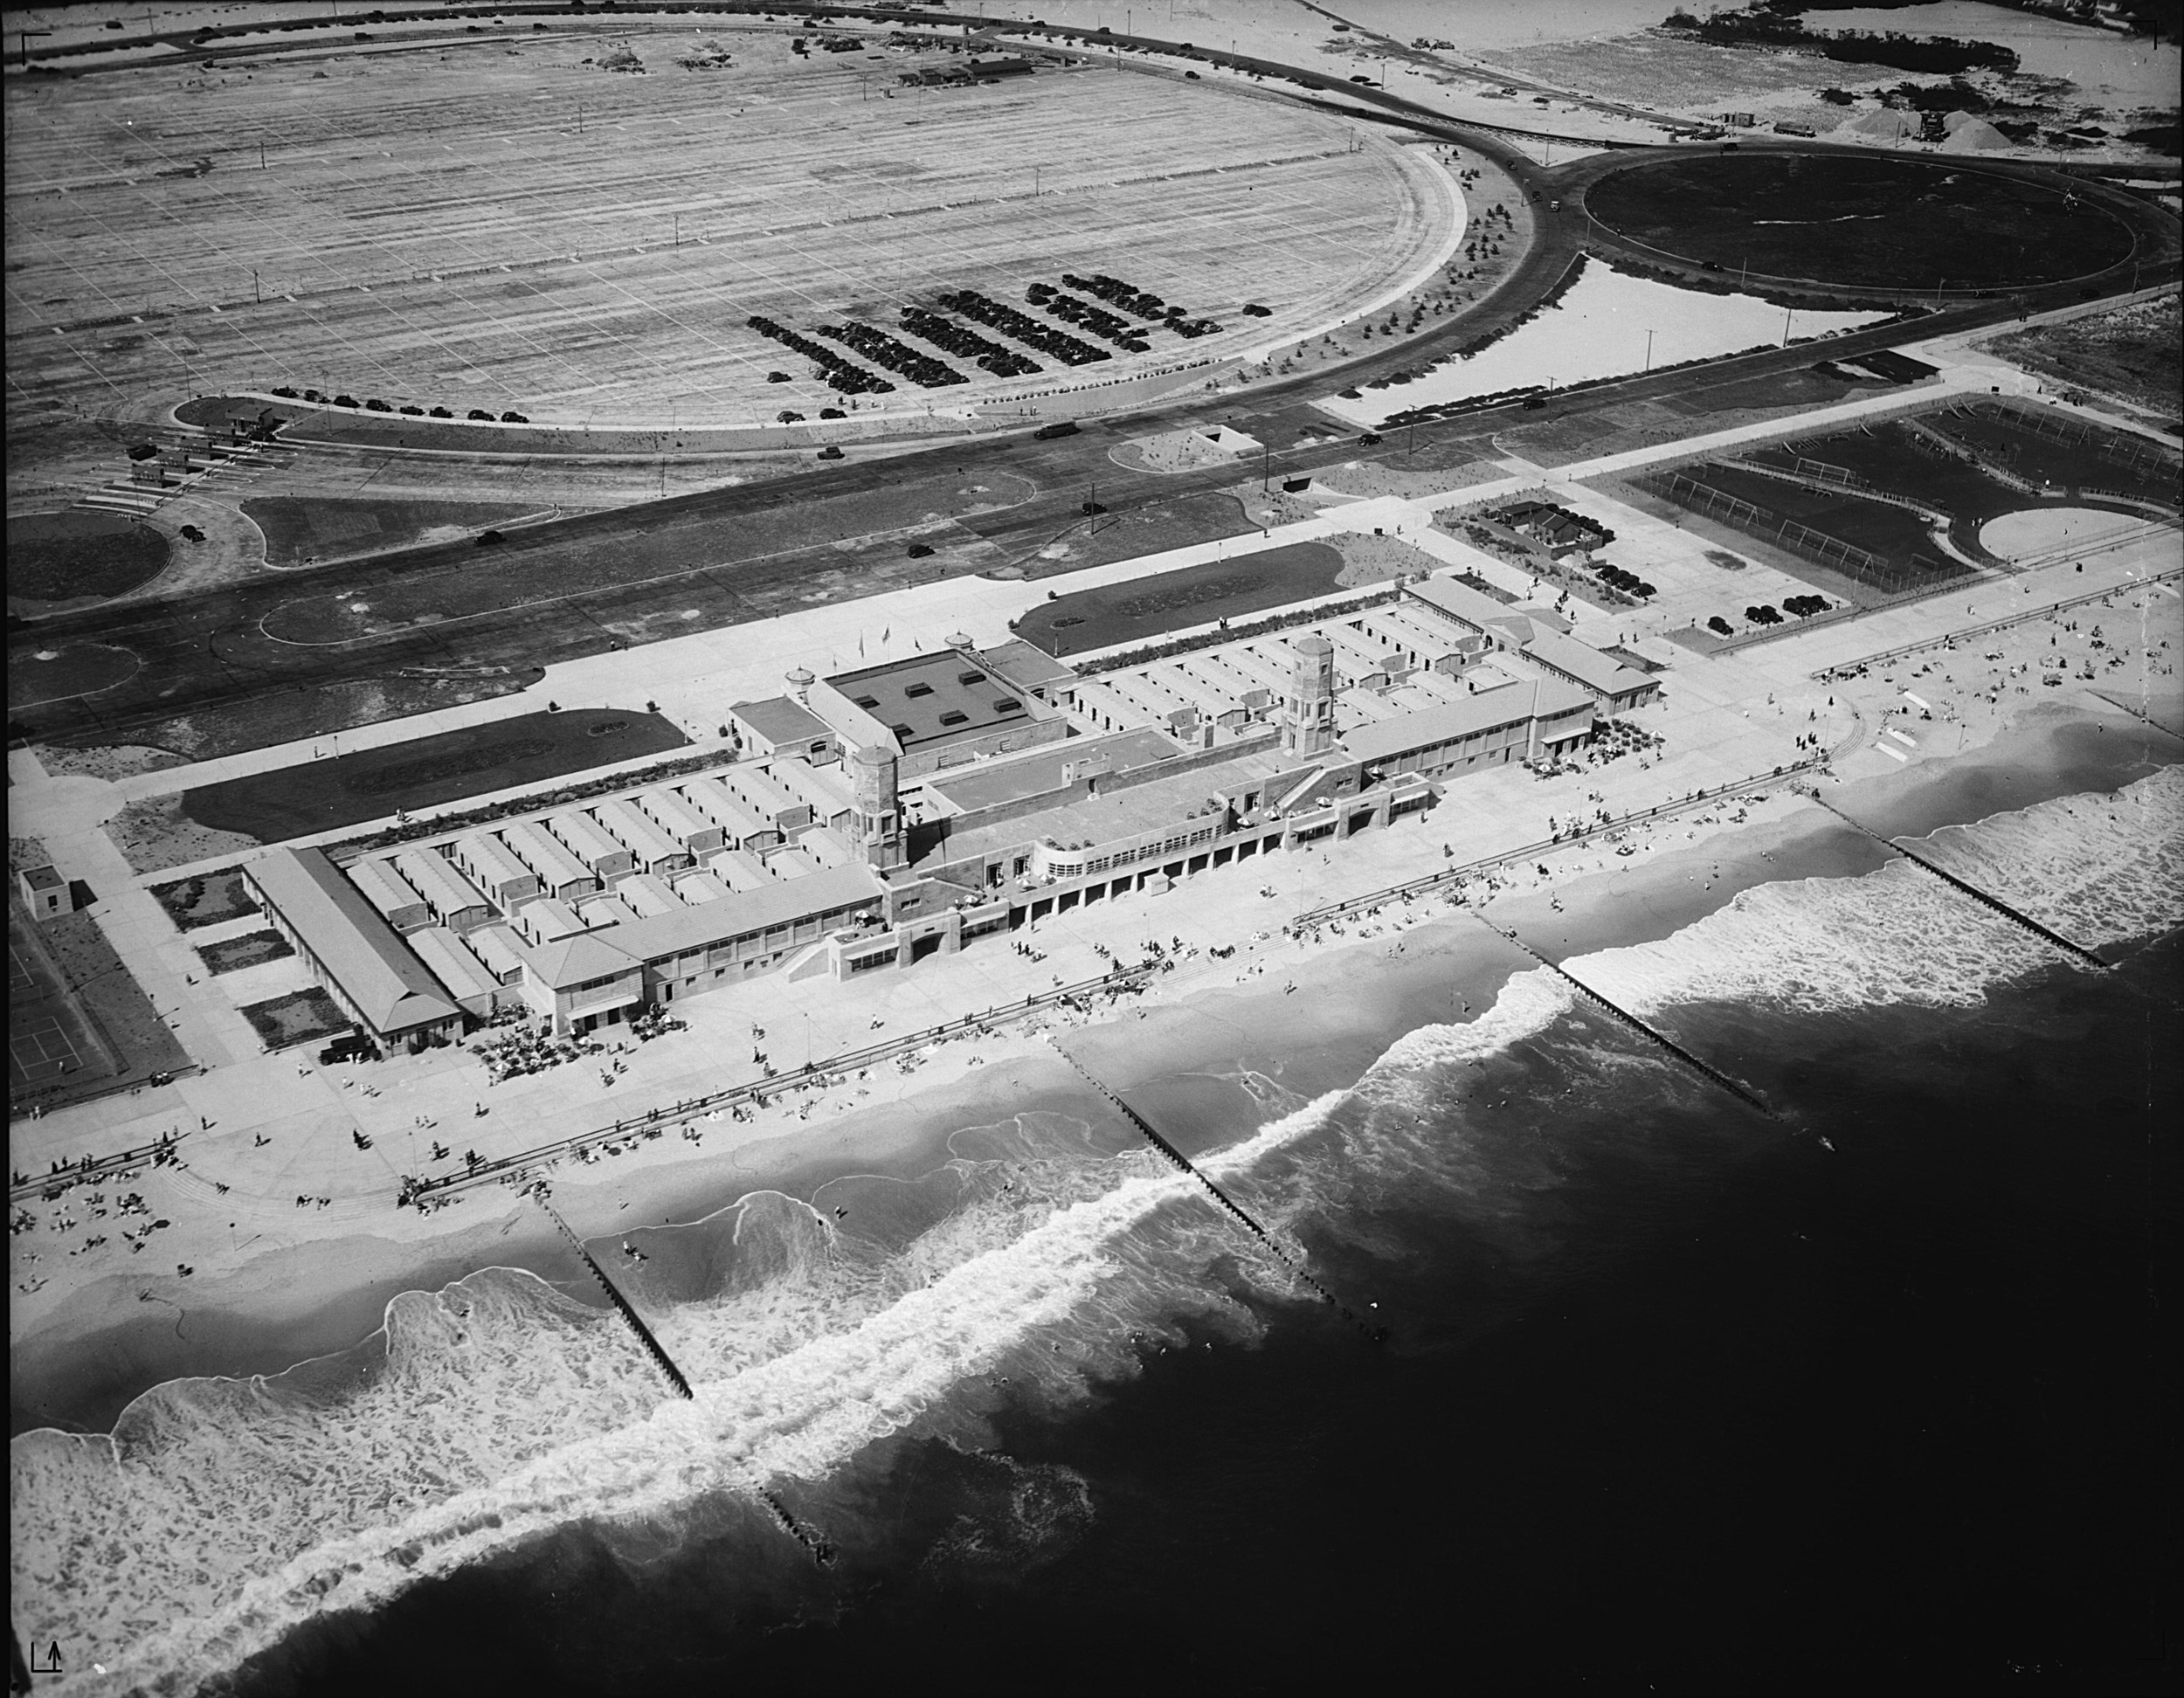 Black and white aerial photograph of a large Art Deco style bathhouse complex and boardwalk with the ocean and piers adjacent